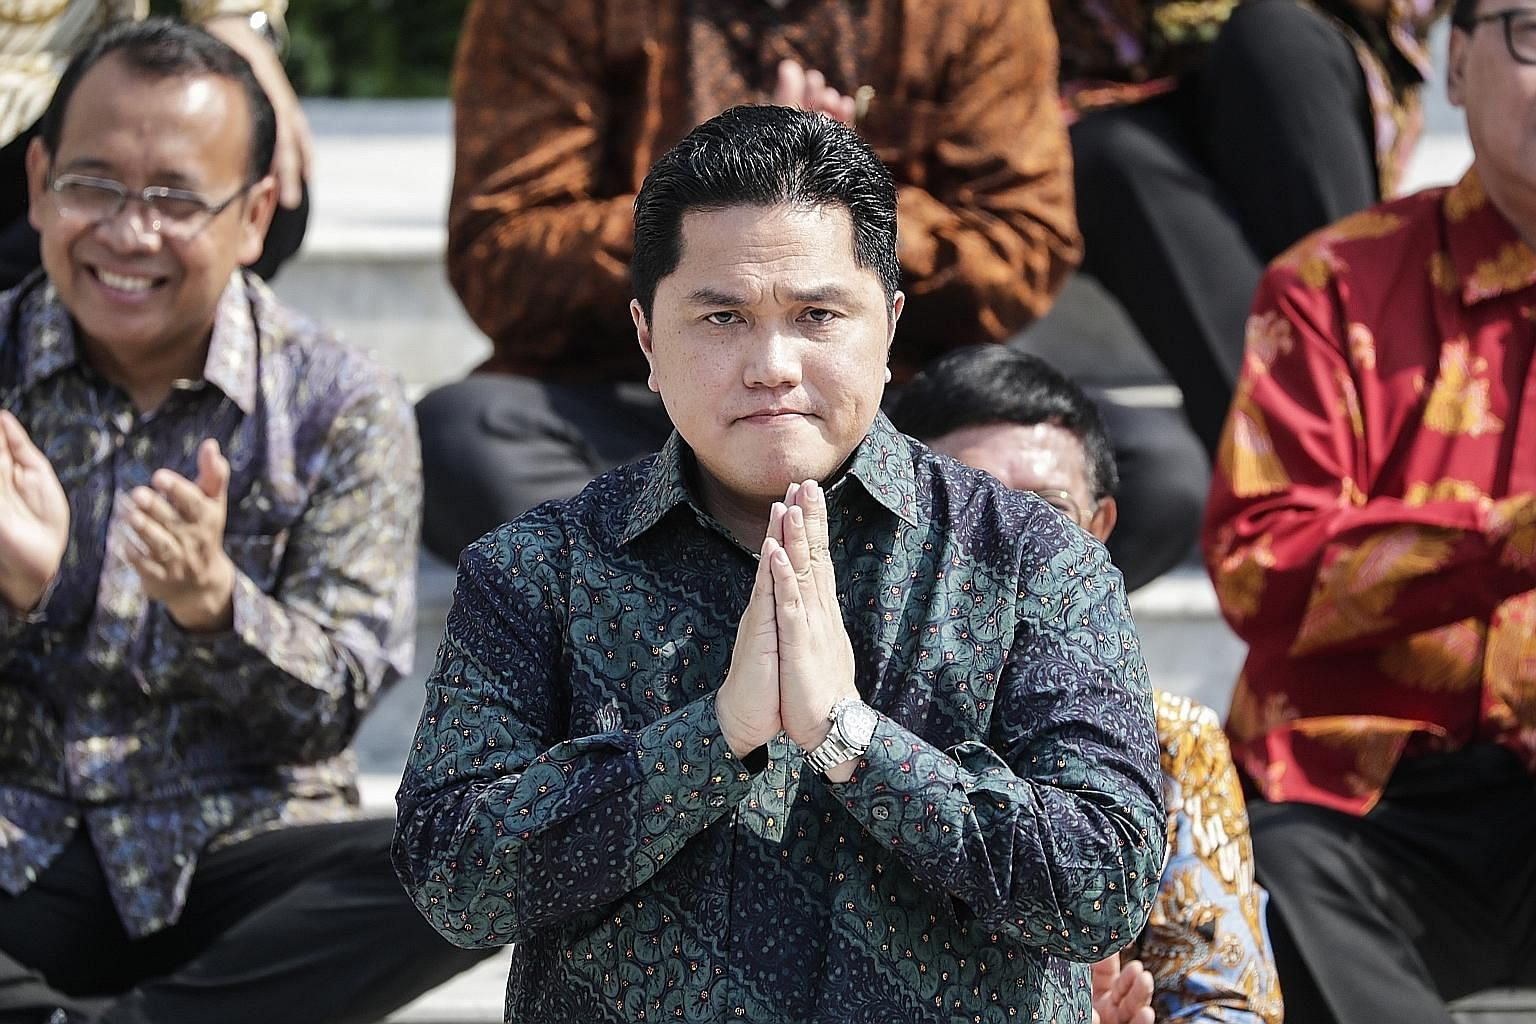 Indonesia's Minister of State-owned Enterprises Erick Thohir has commissioned McKinsey and Boston Consulting Group to recommend an overhaul of the state-owned sector that would marry up struggling companies with healthier ones, improve skills, and sc